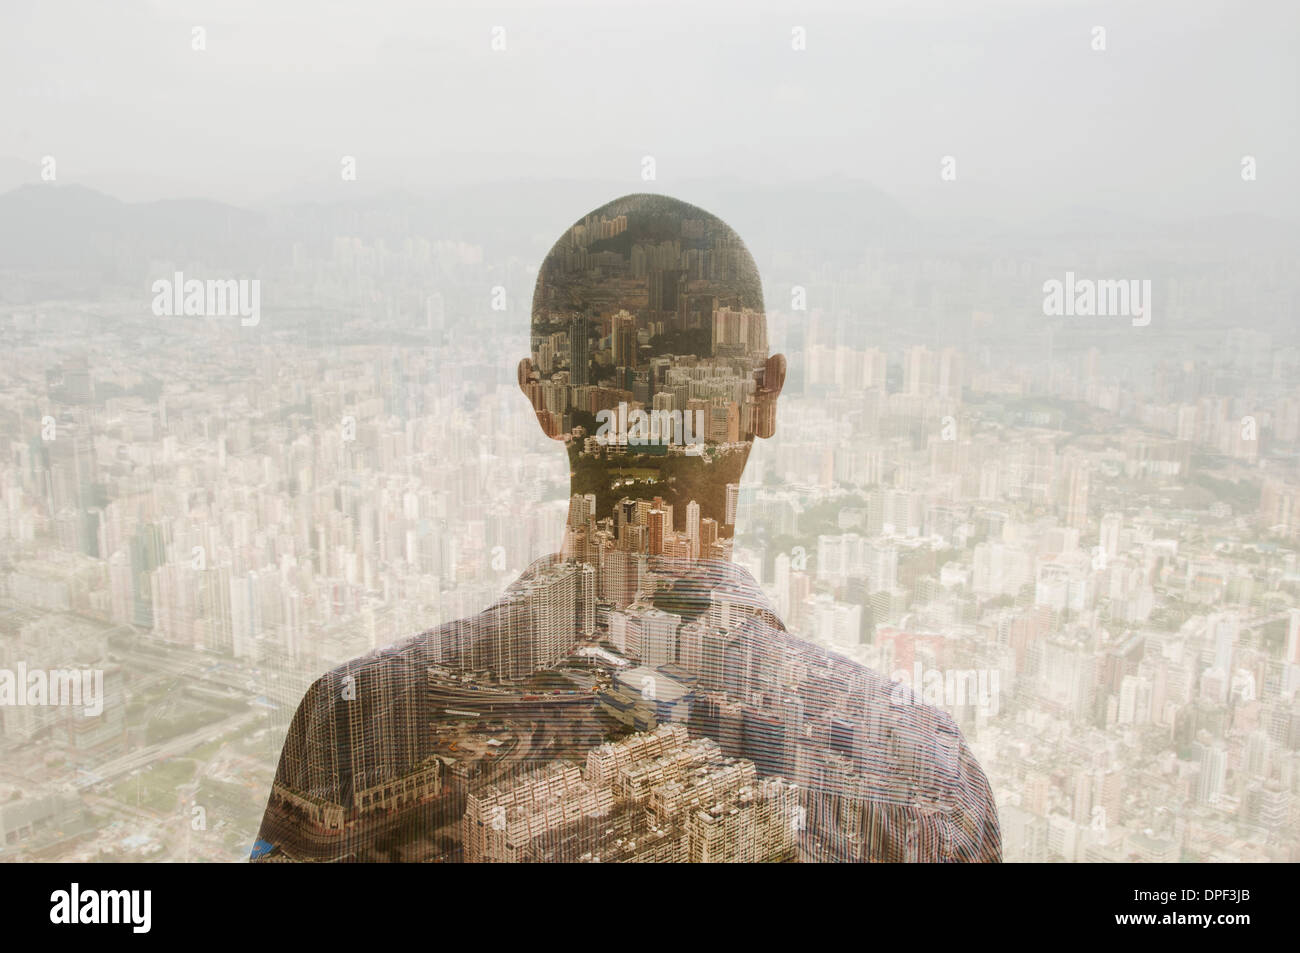 Businessman and Hong Kong cityscape, composite image - Stock Image